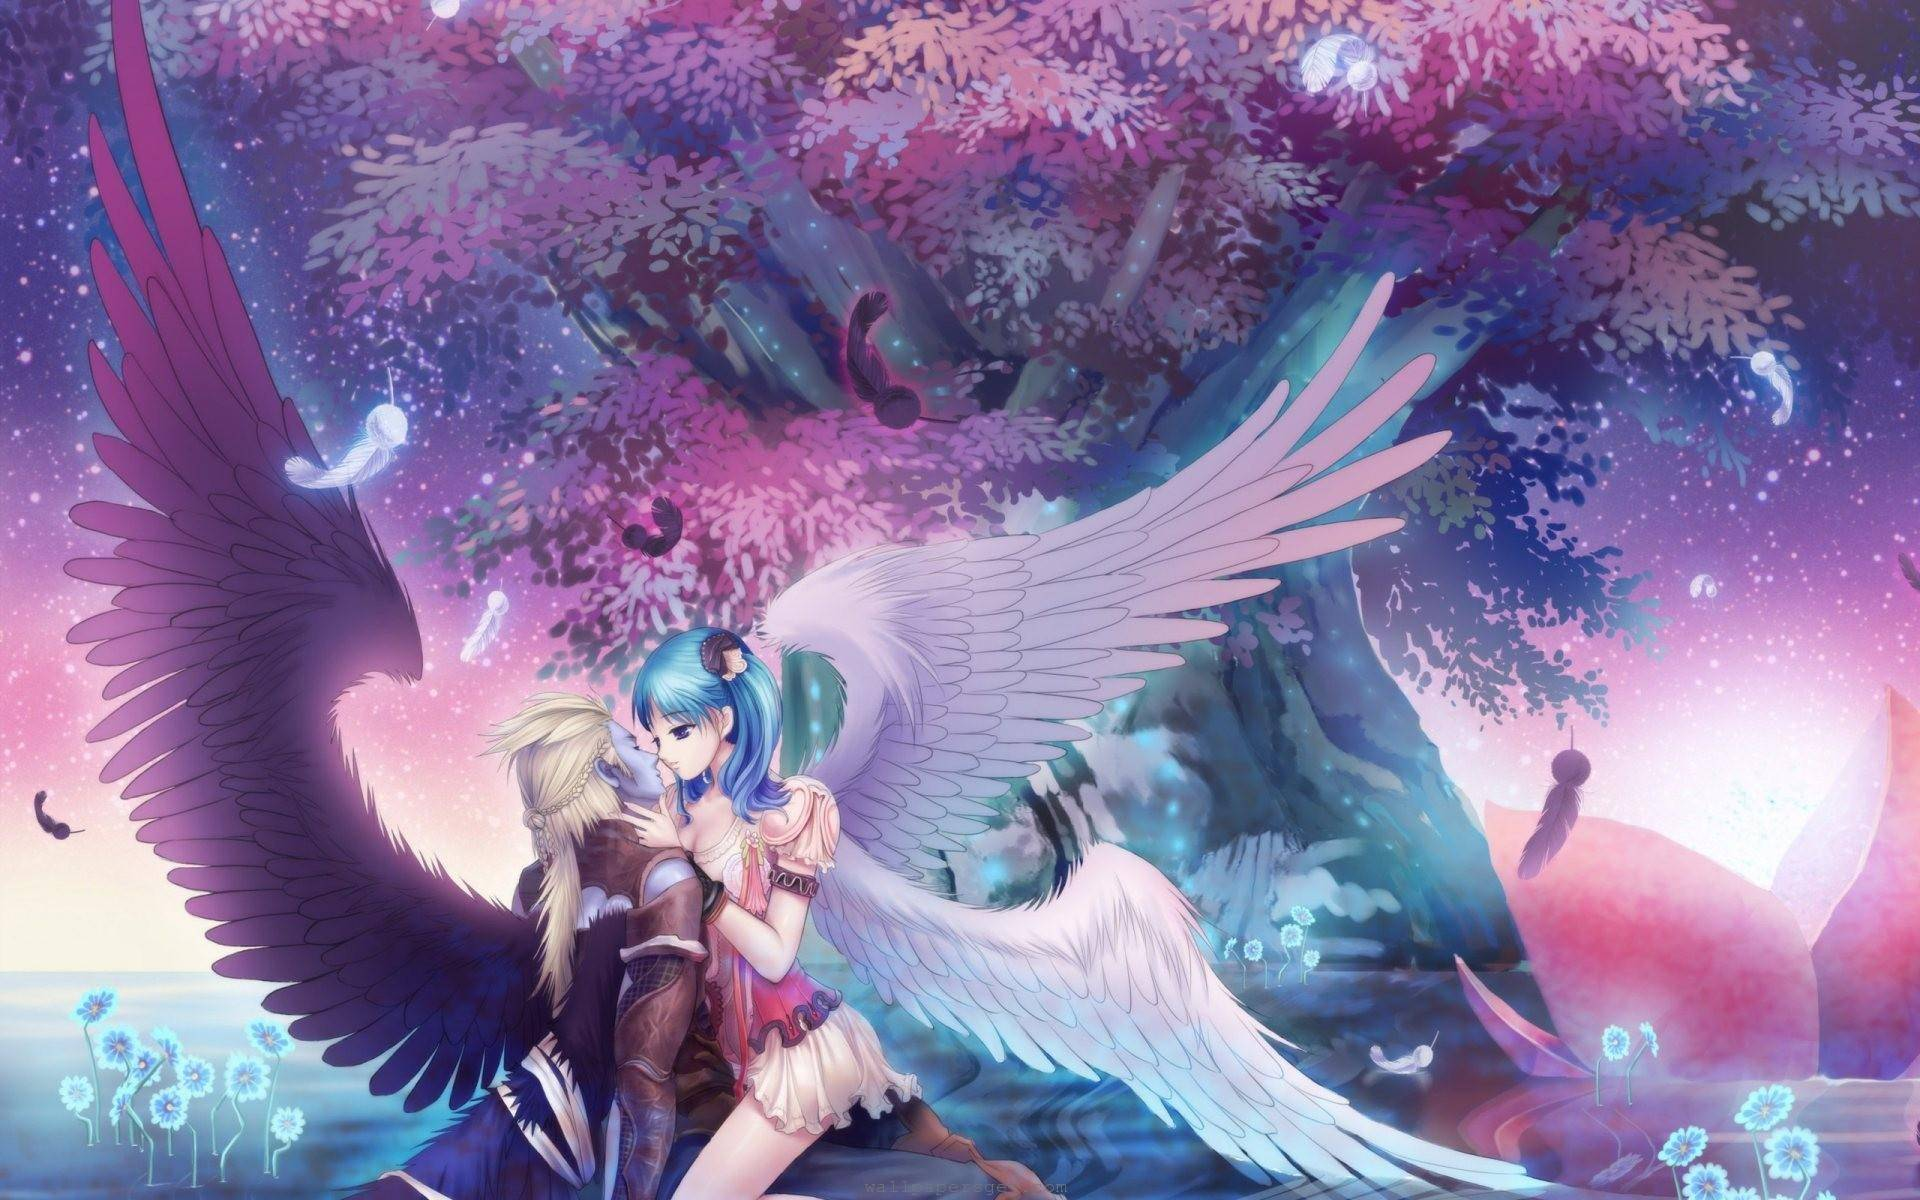 Romantic anime wallpaper wallpapersafari - Beautiful girl anime wallpaper ...